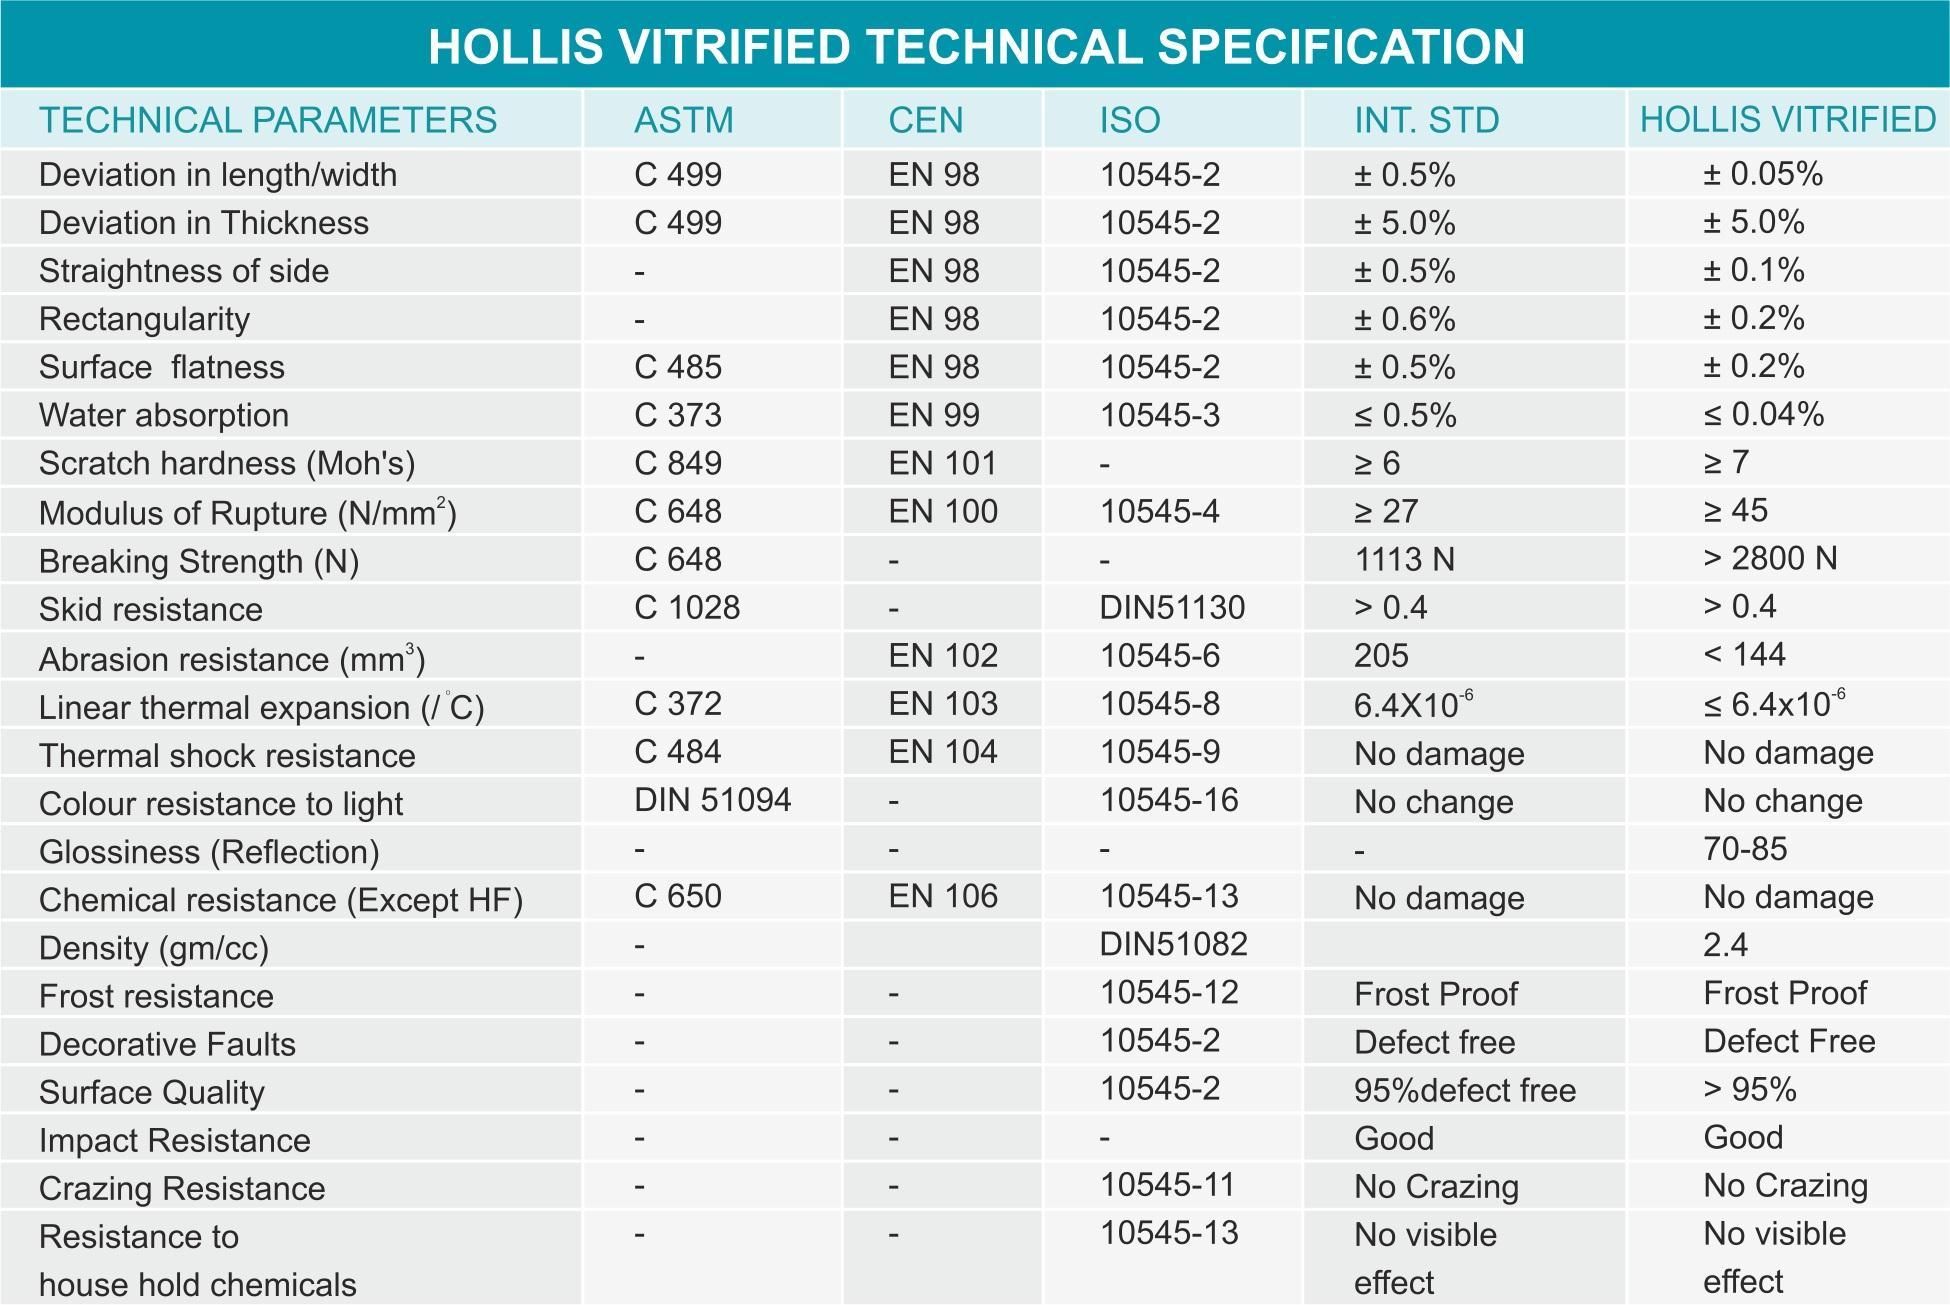 Tech. Specification Image